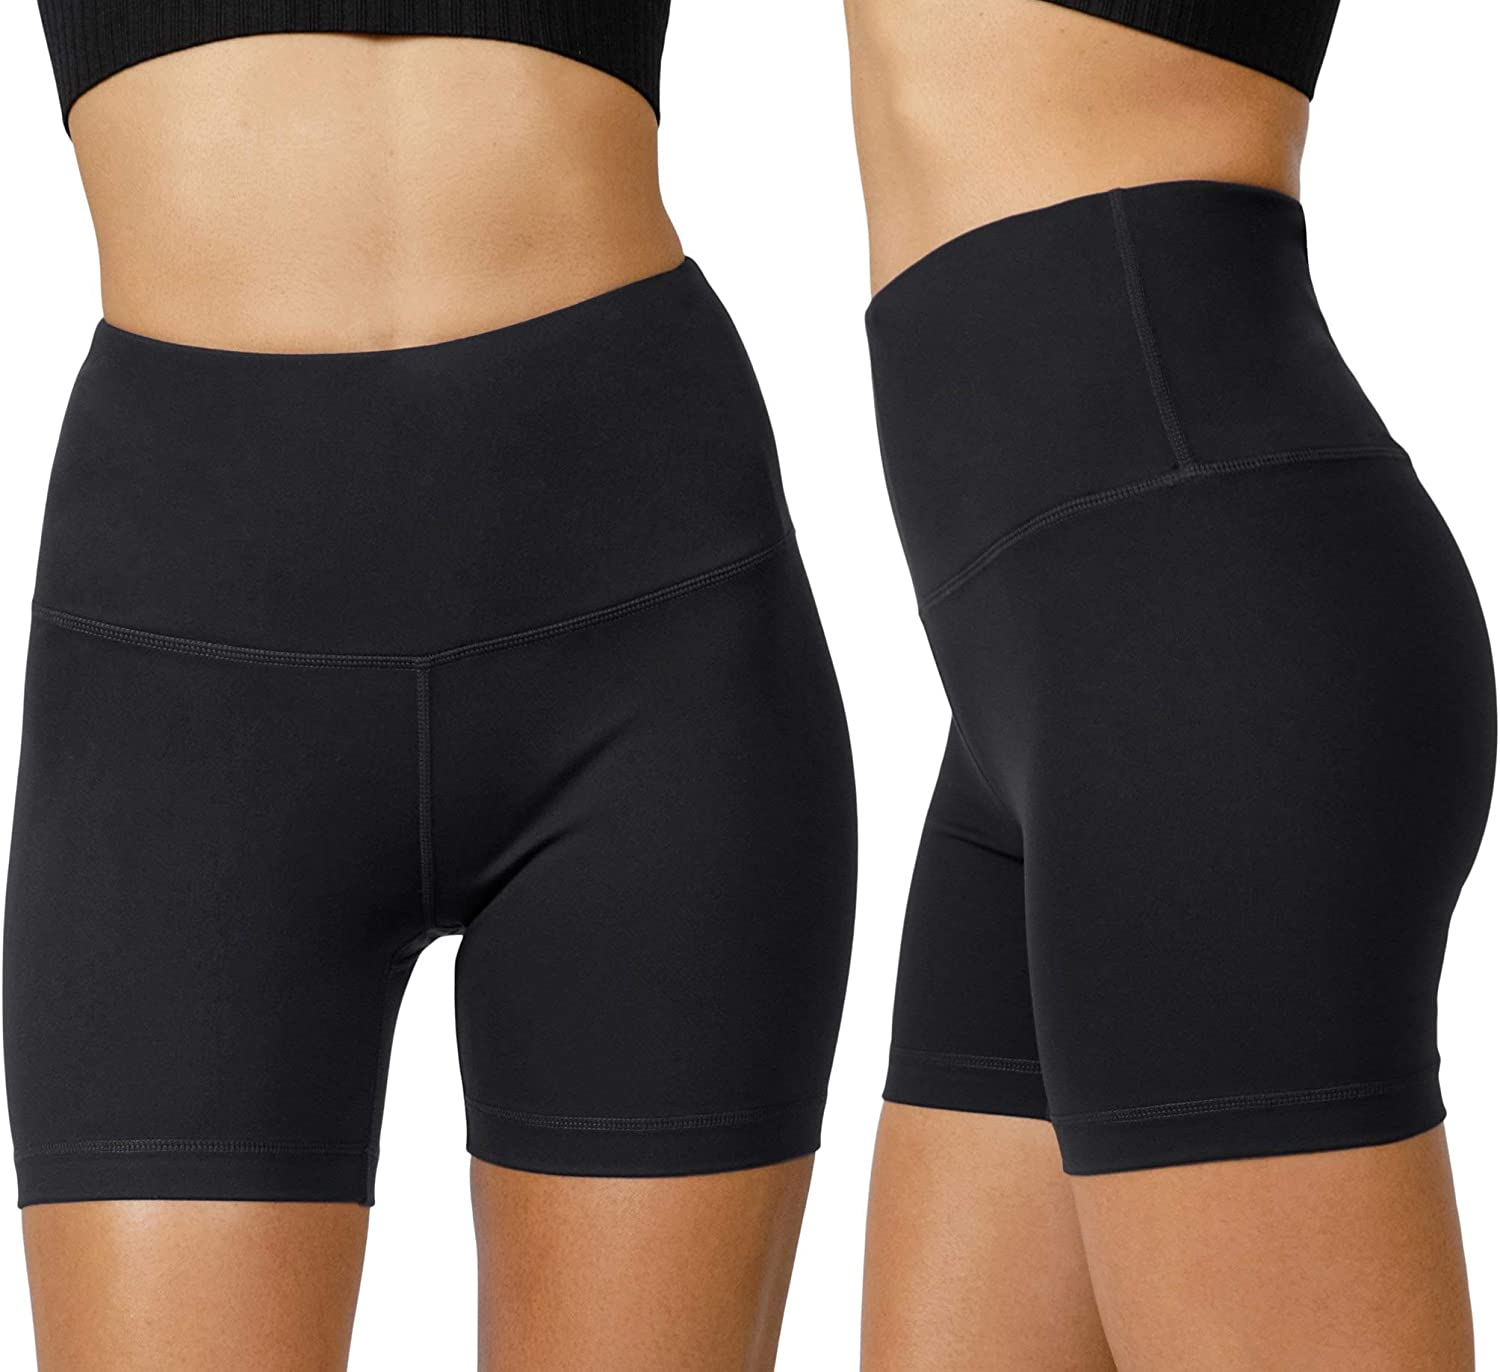 Yogalicious Lux quality assurance High Waist Squat Proof - Free shipping anywhere in the nation Biker Short 5